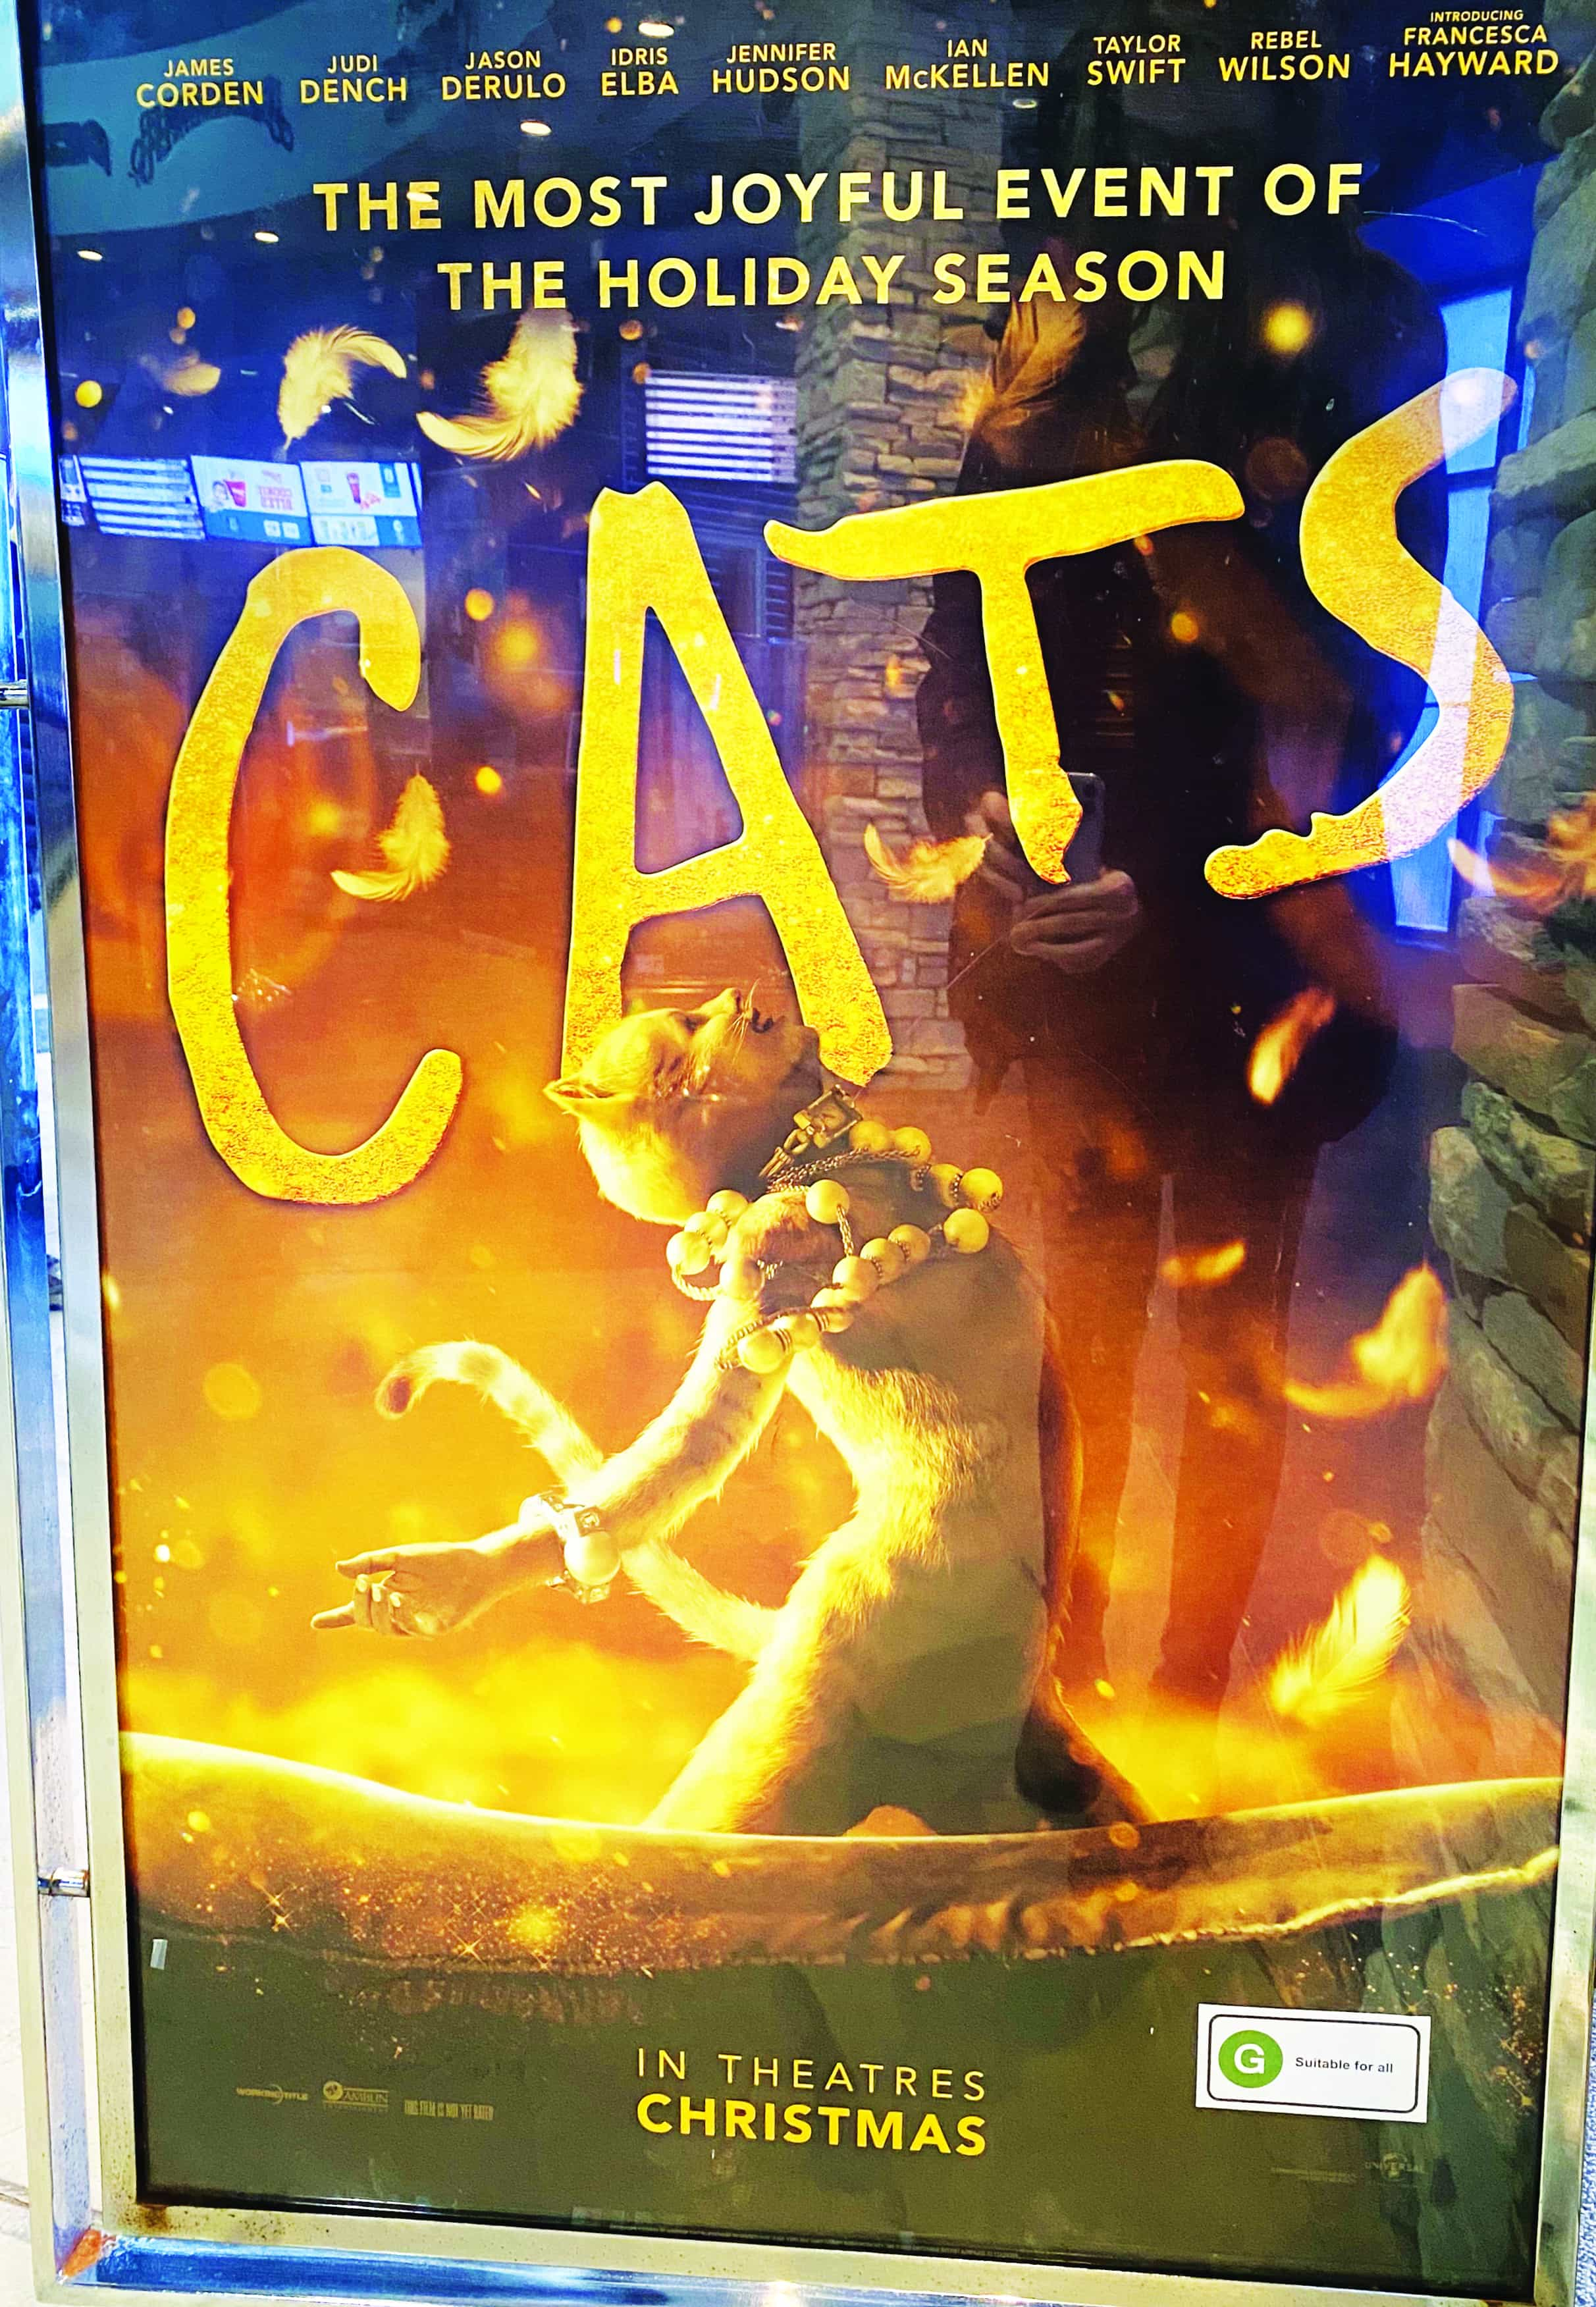 You'll need nine lives to endure the horrors of Cats